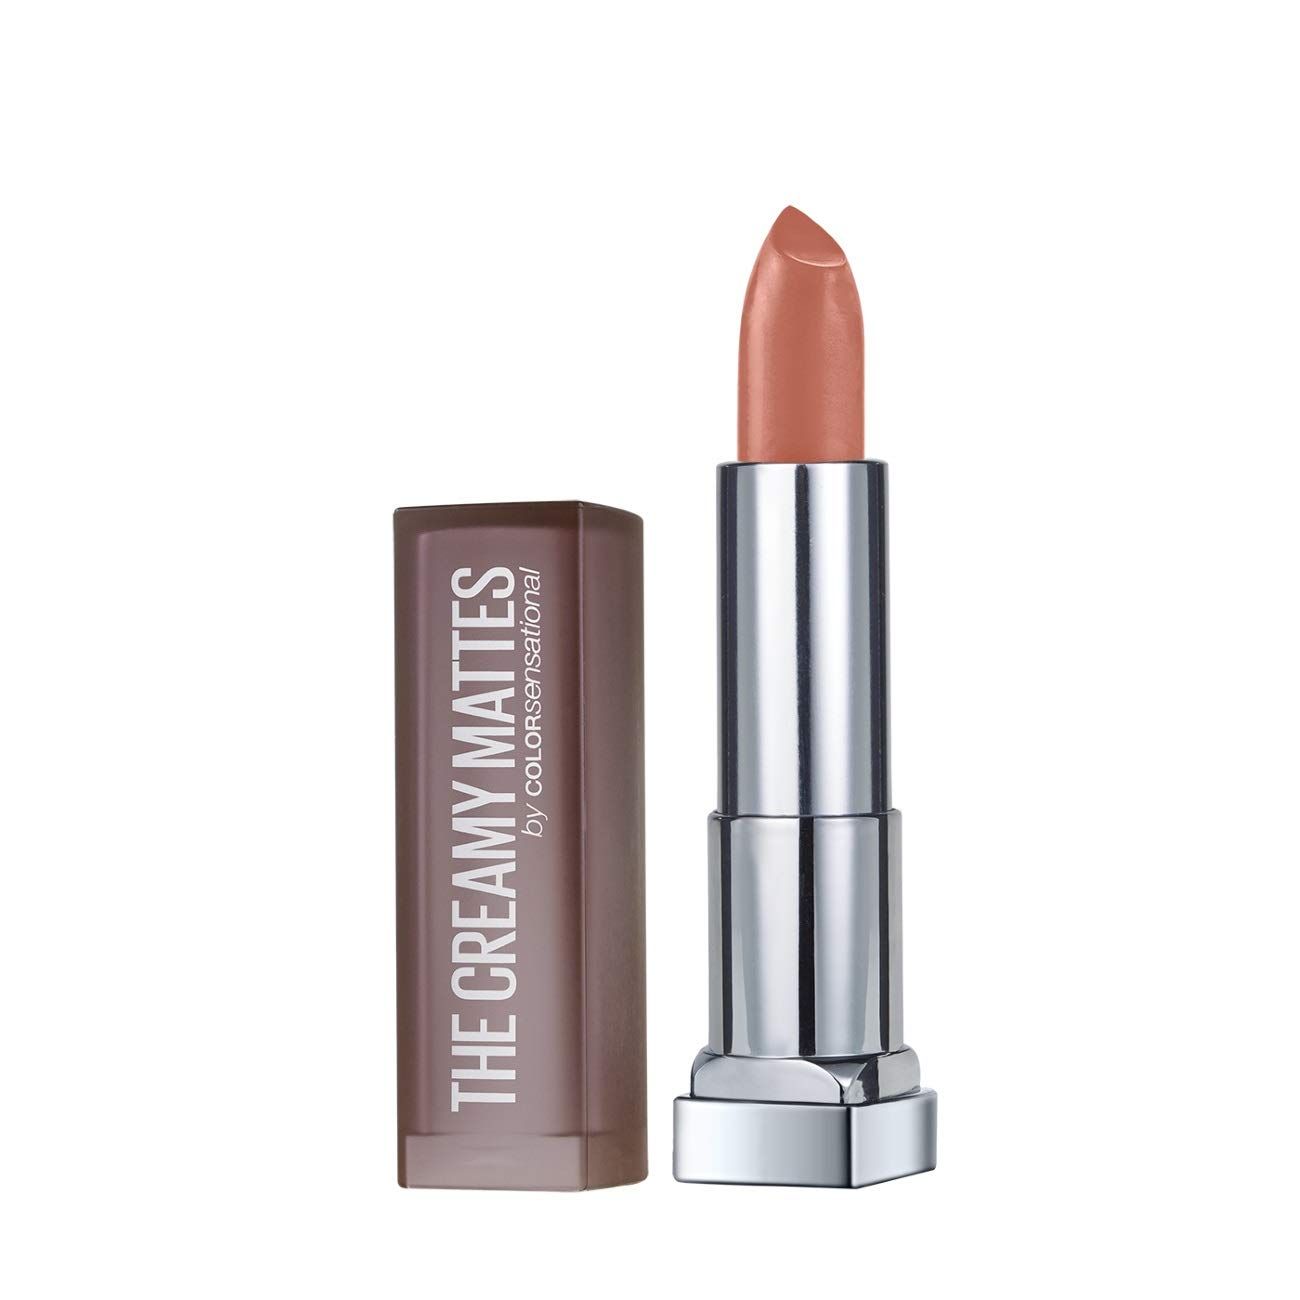 Maybelline New York Color Sensational Creamy Matte Lipstick Nude, 3.9g